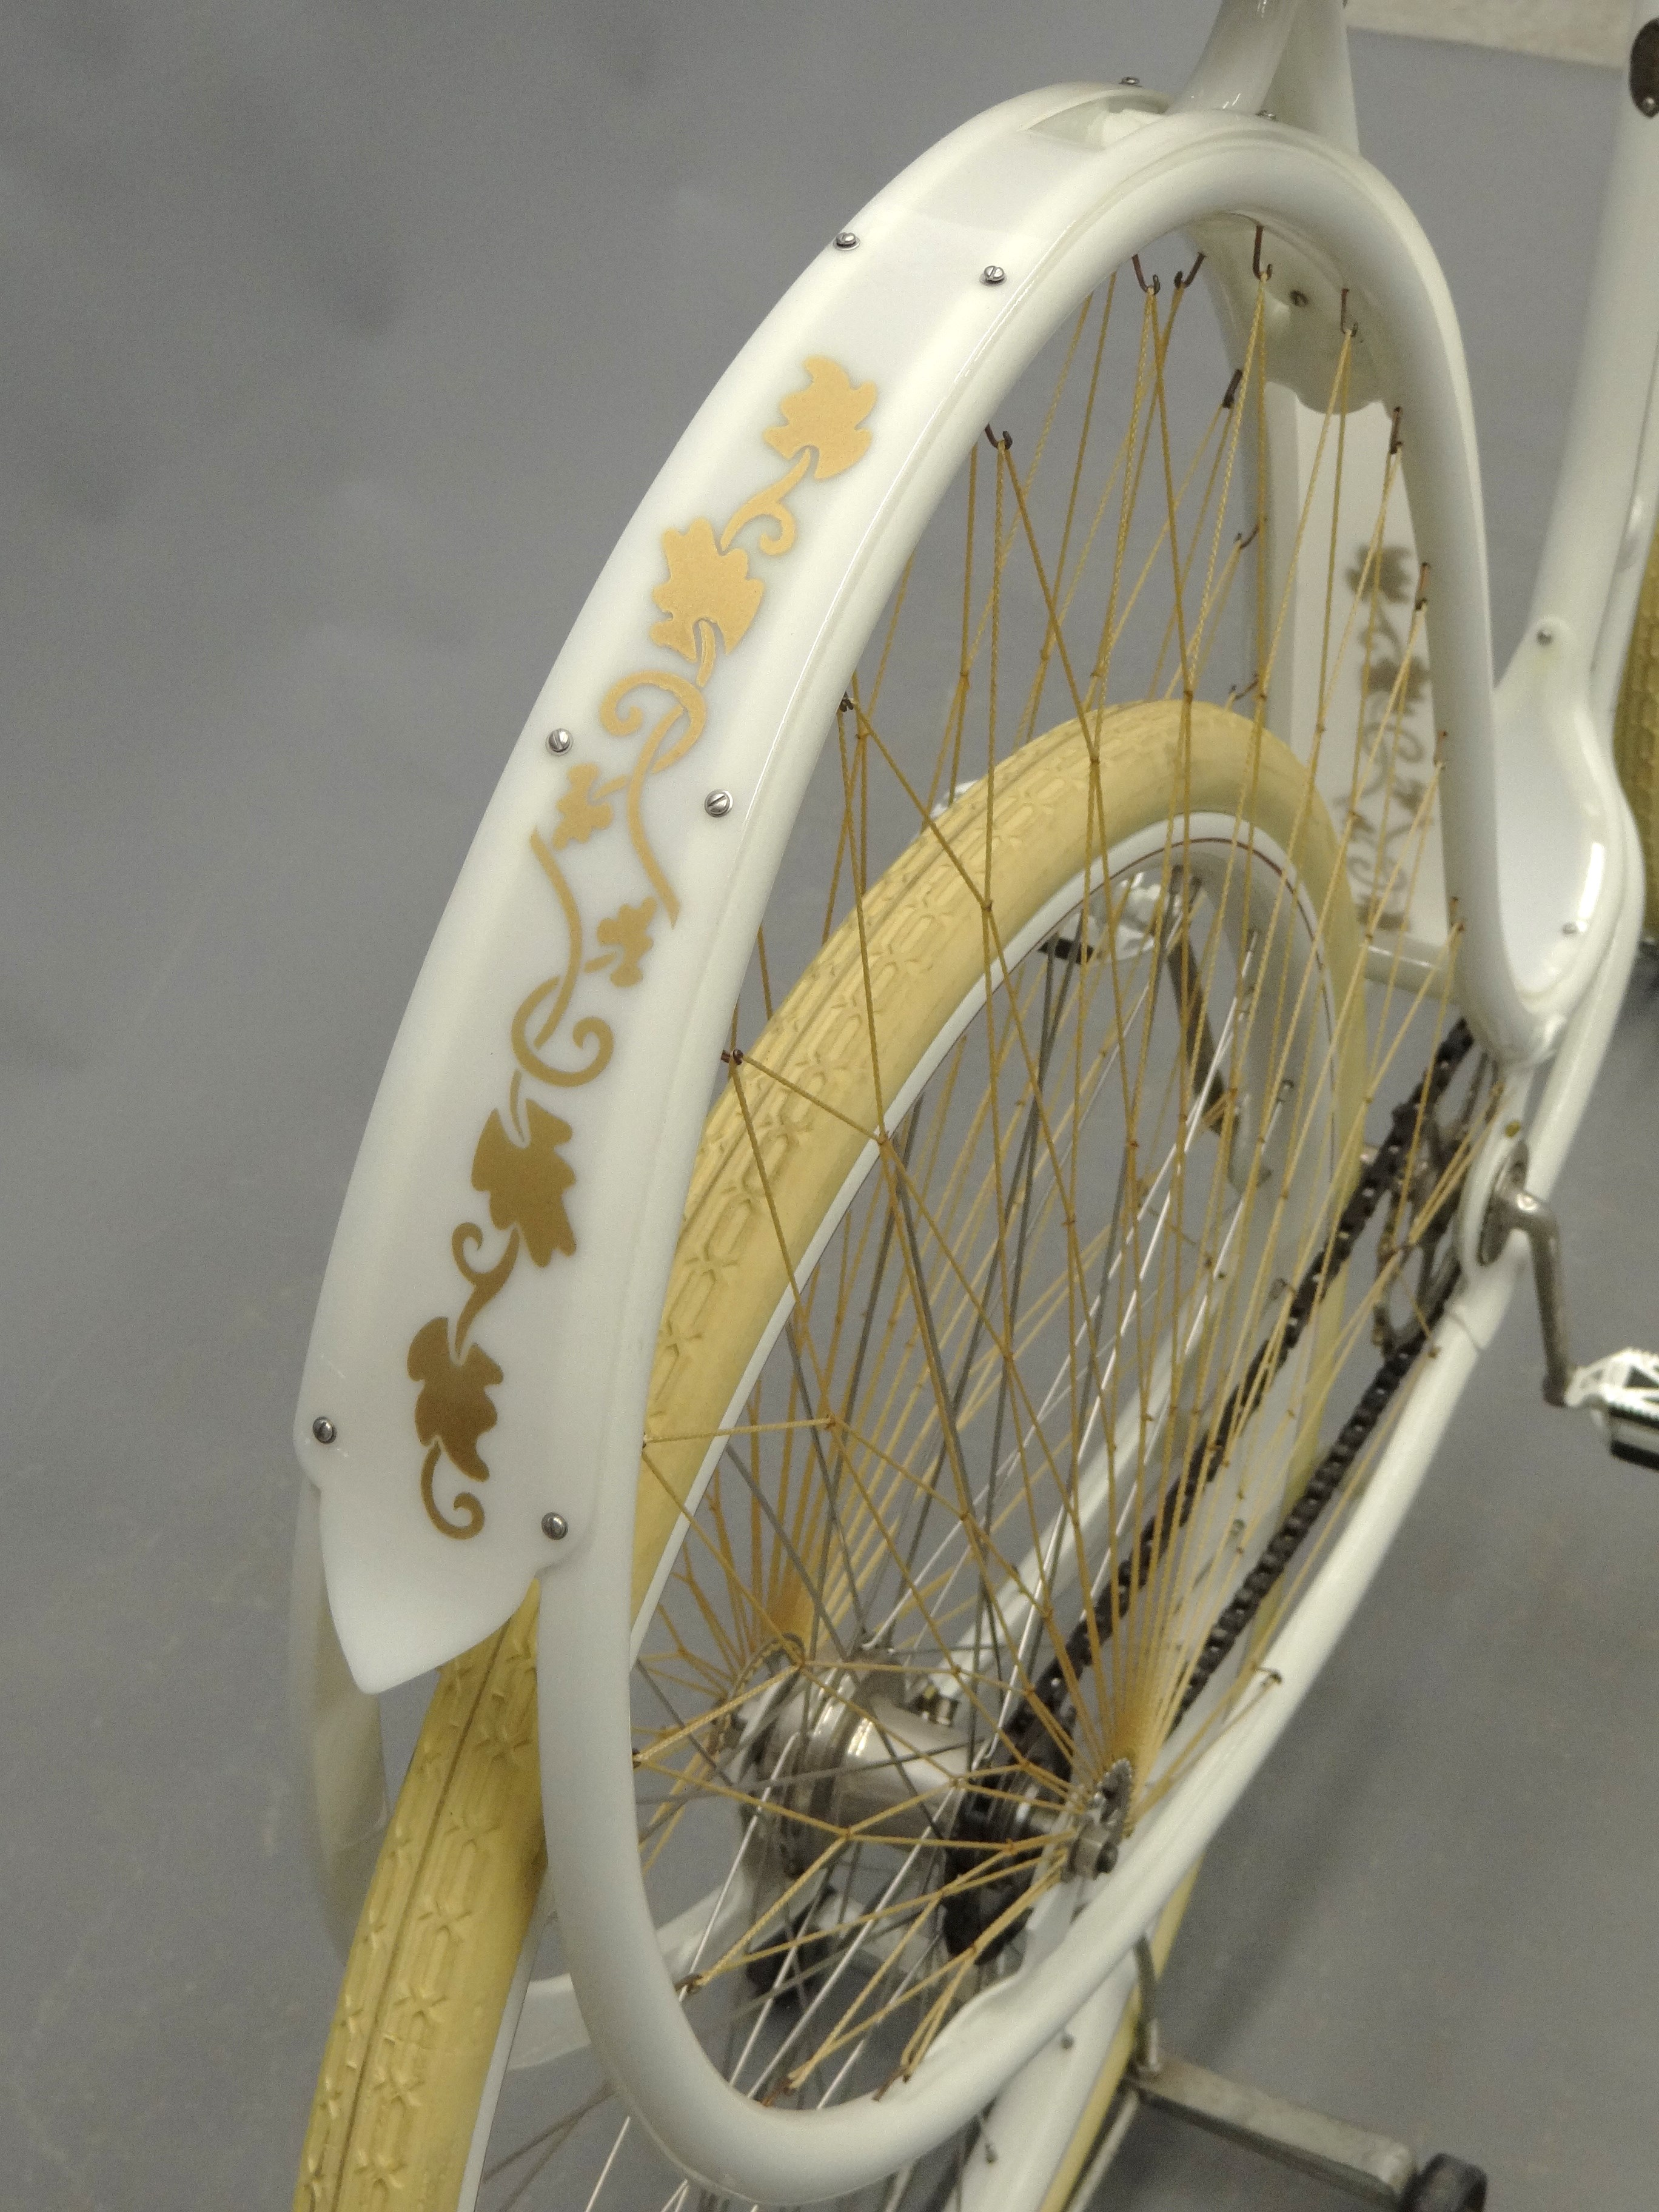 "A detail shot of the back wheel of the 1898 Cygnet ""Swan"" Ladies pneumatic safety bicycle, which shows decorative gold vines painted on the back fender."